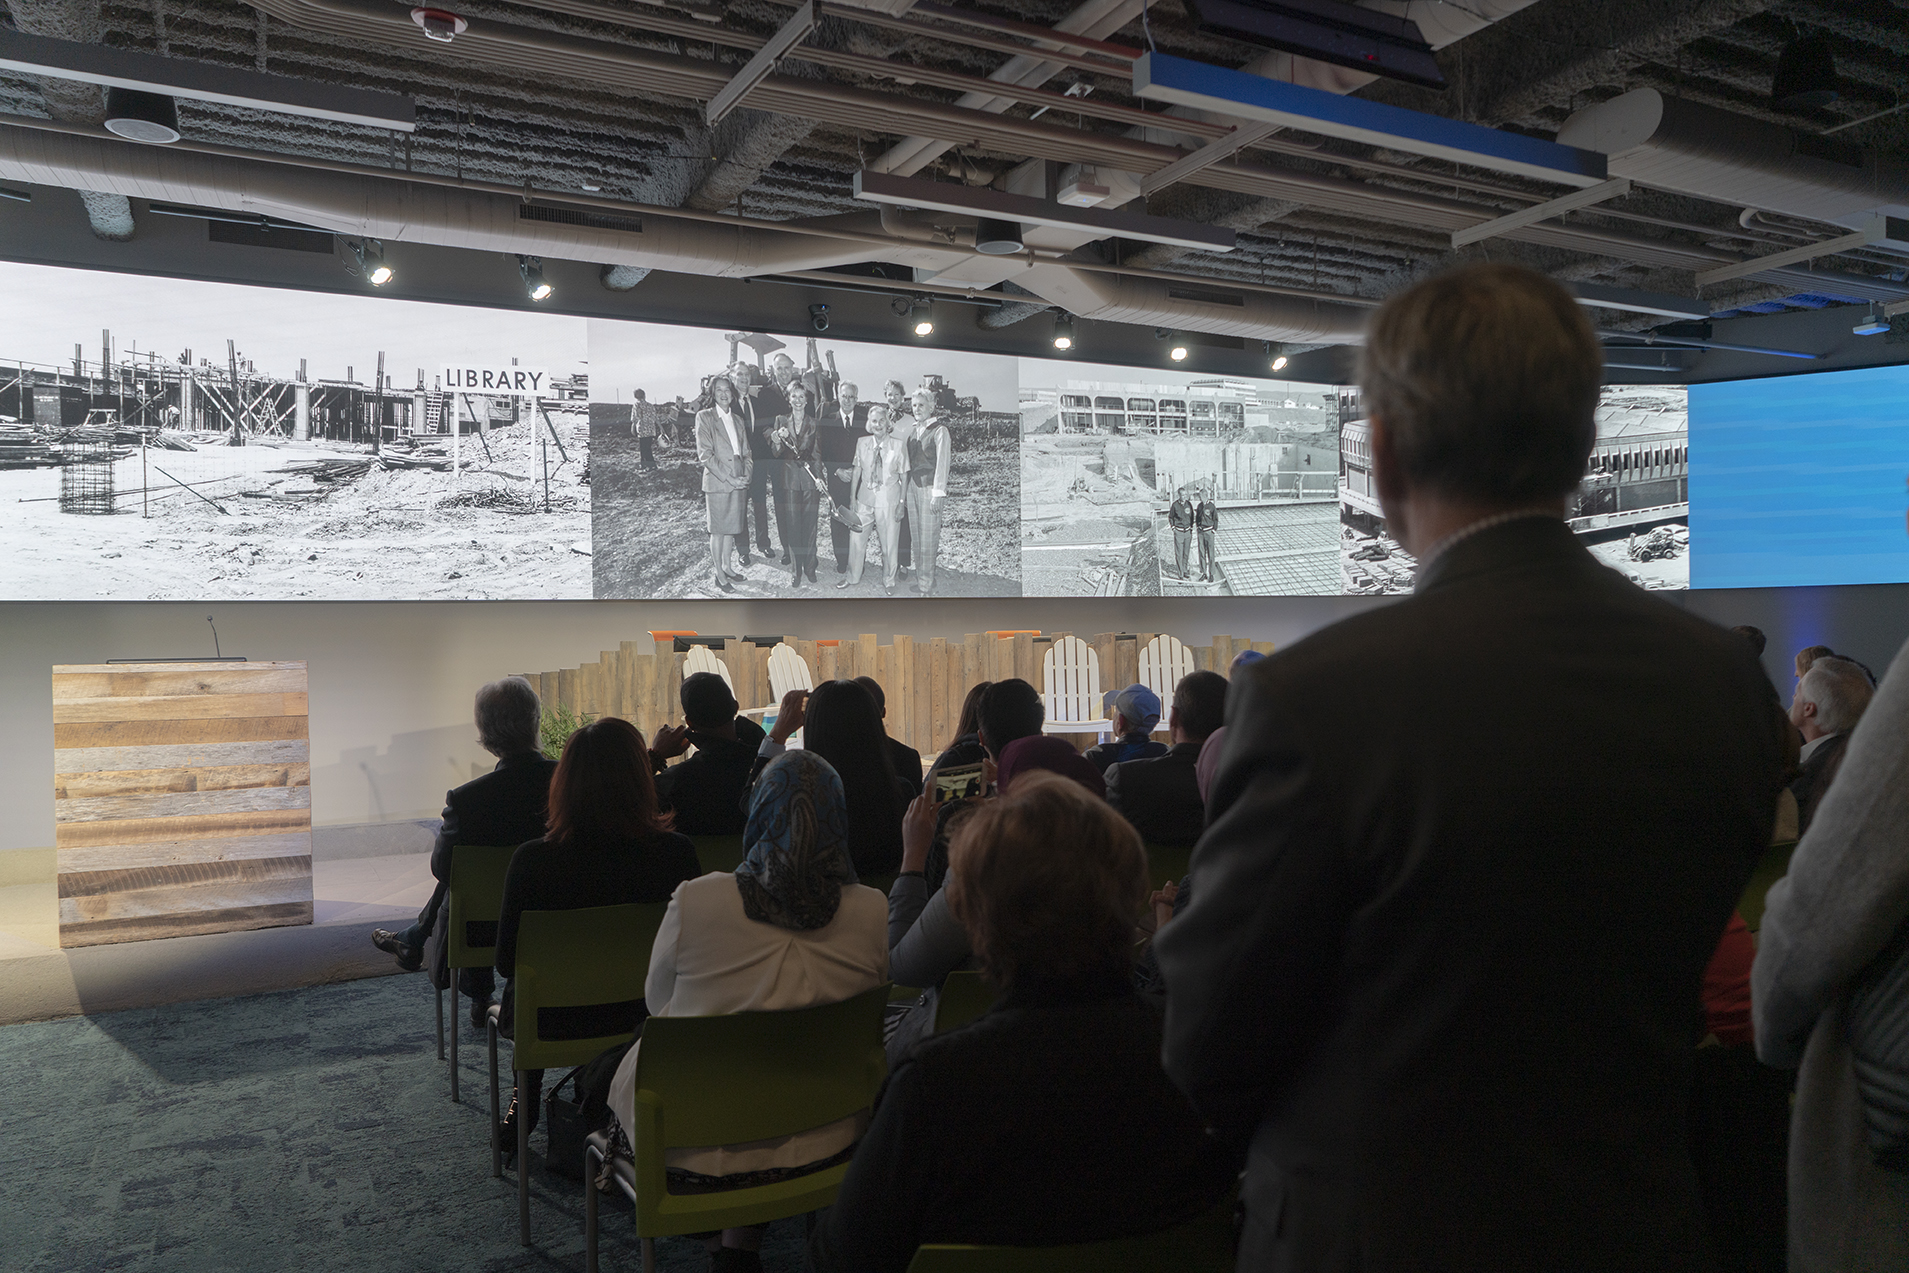 WATCH: UCI Beall Applied Innovation's Grand Opening Video